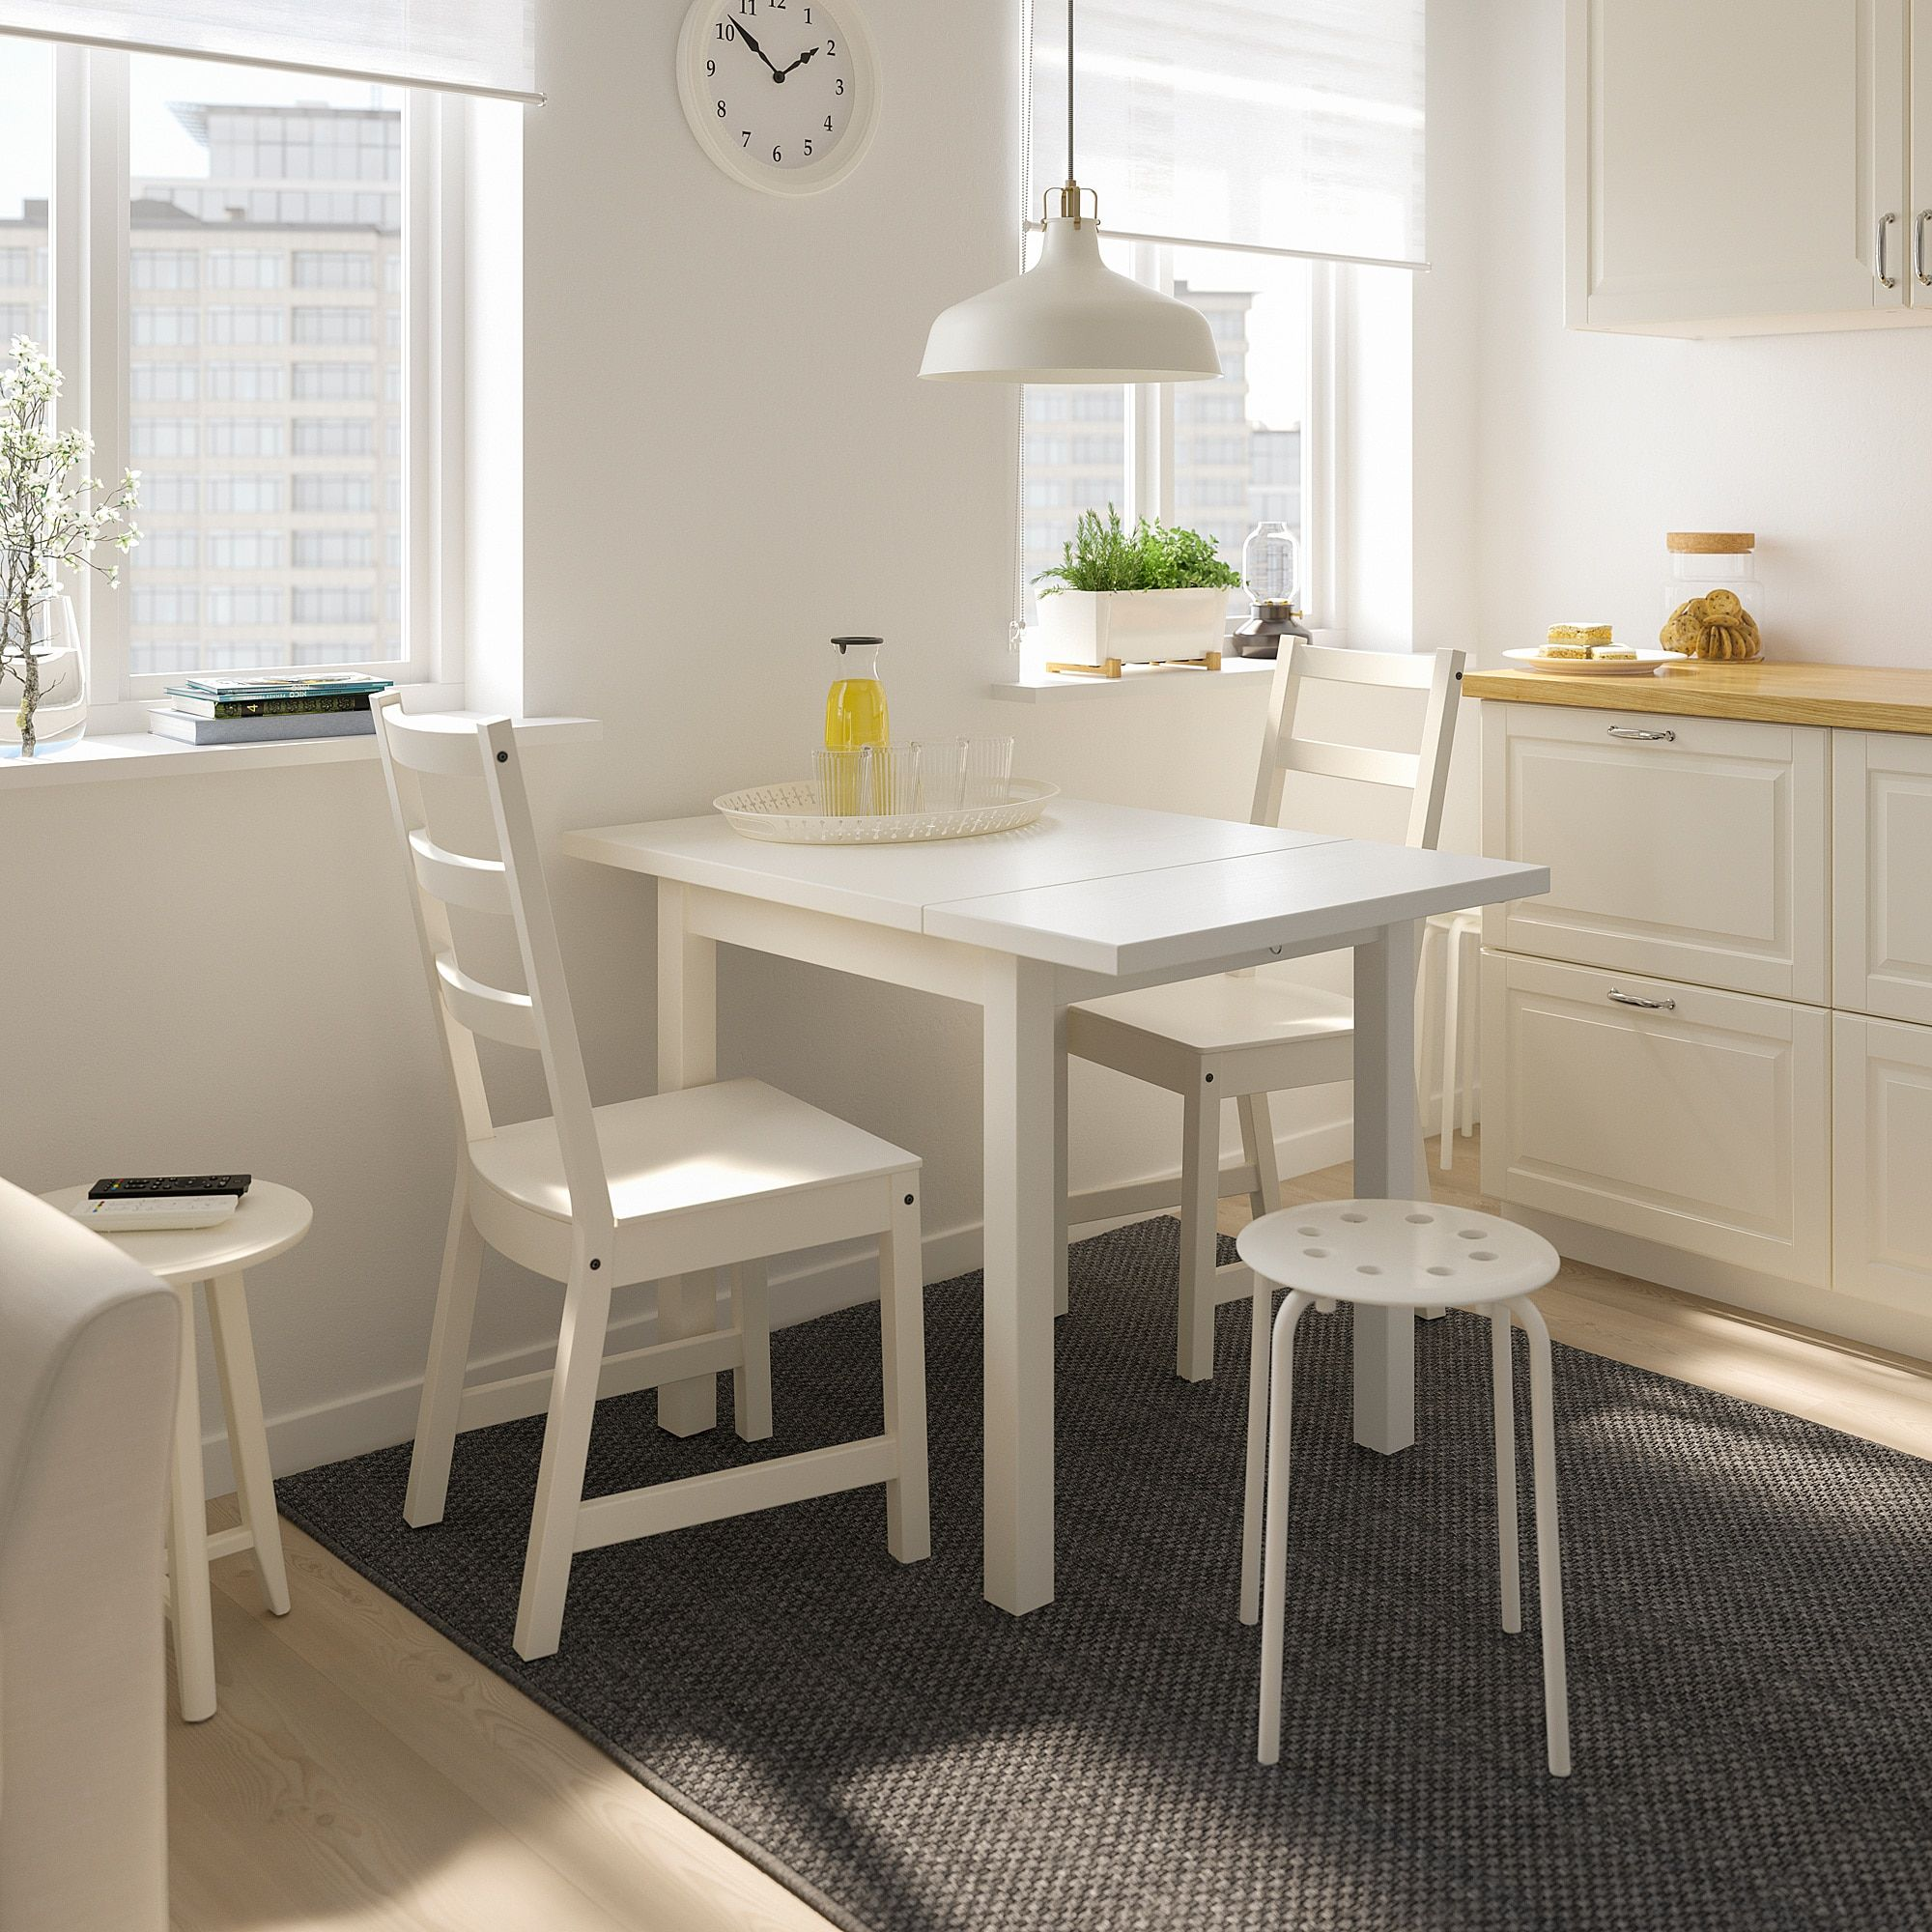 Nordviken Table And 2 Chairs White In